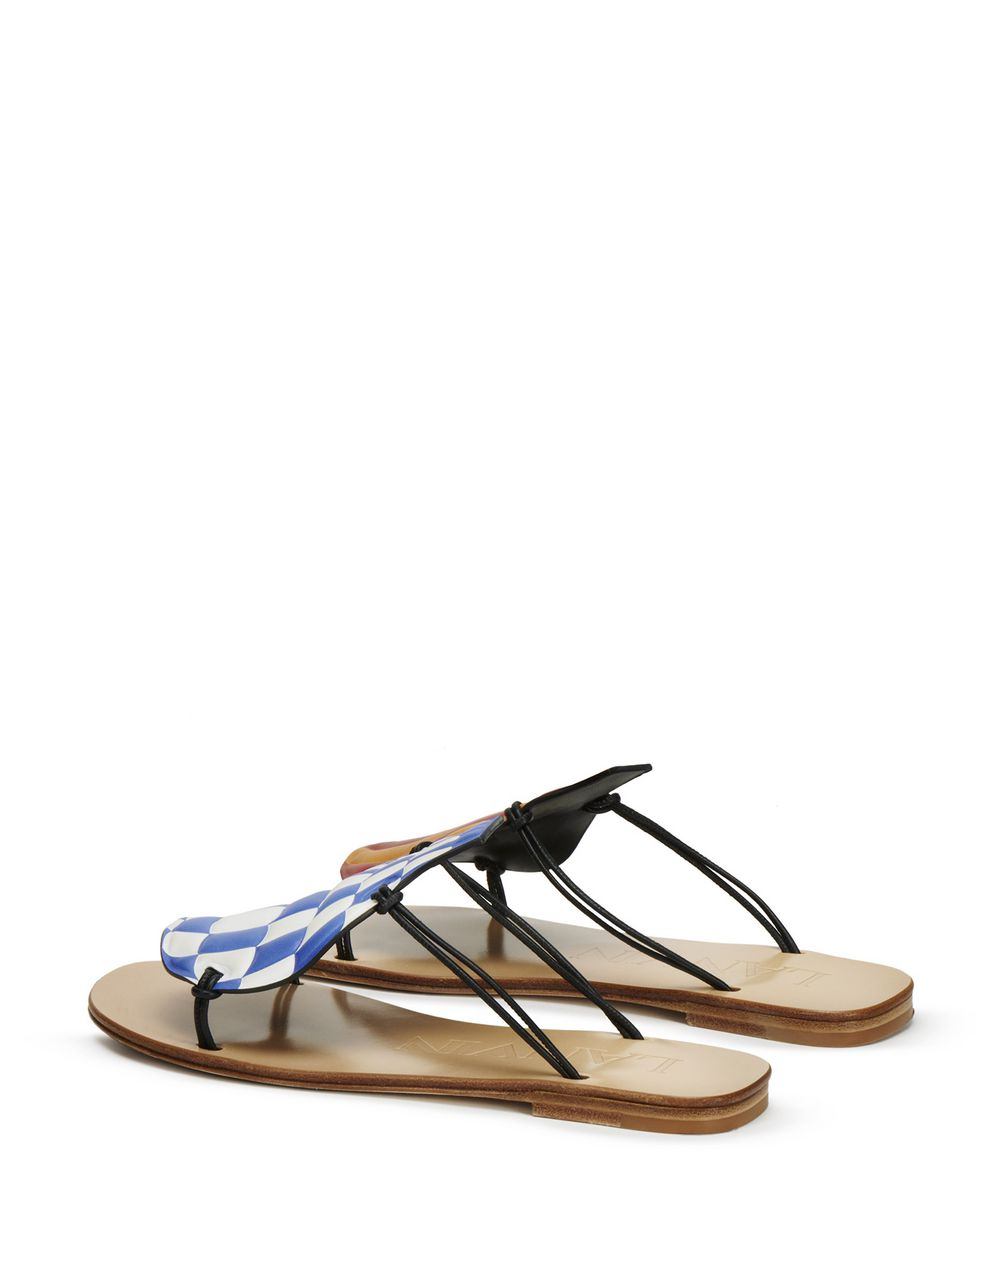 HOT-AIR BALLOON FLAT SANDAL - Lanvin